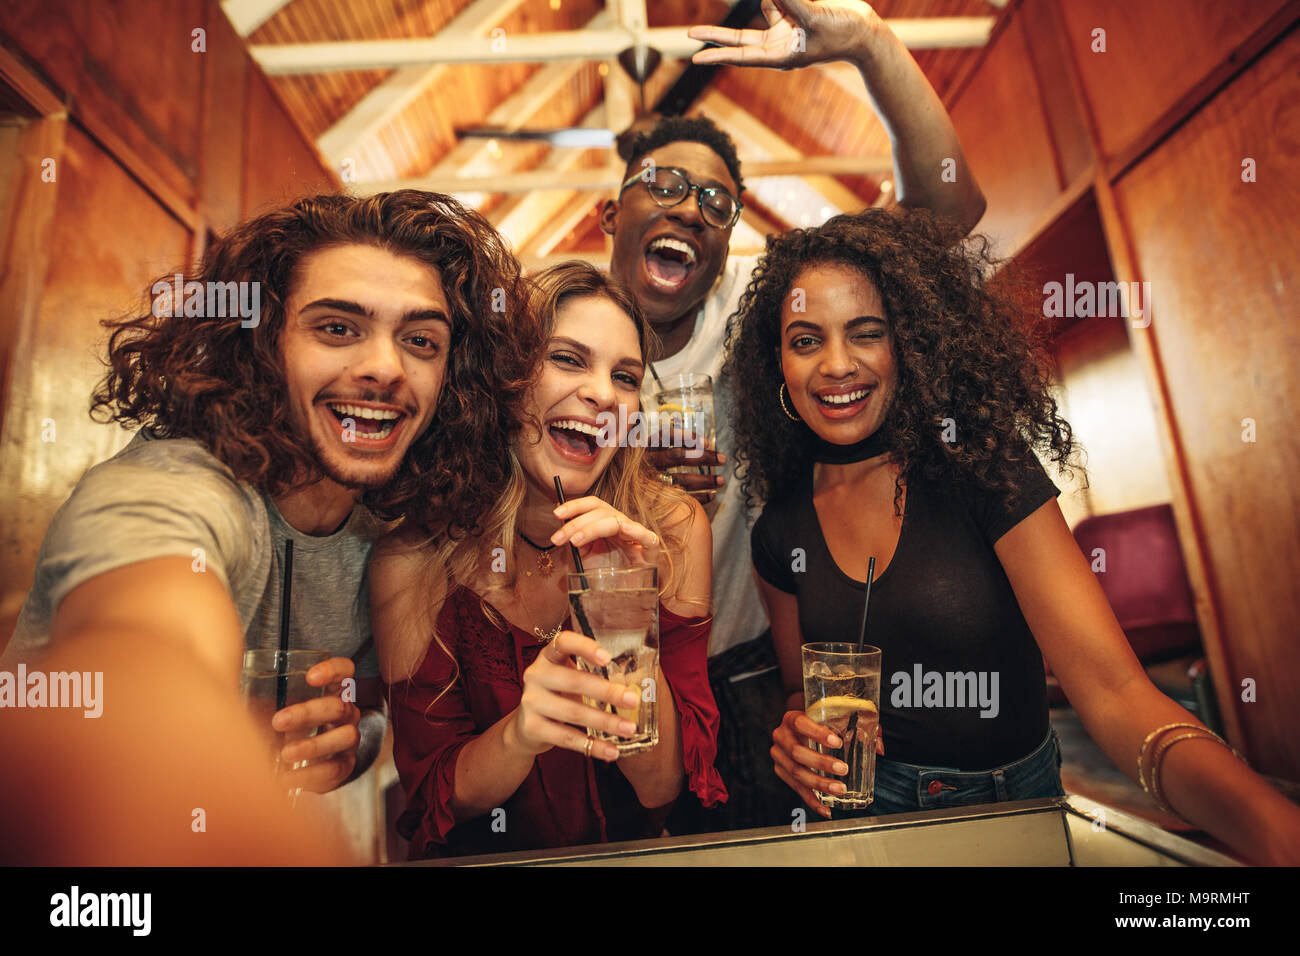 Group of happy young friends with drinks gathered for party in club. Excited men and woman with drinks taking selfie during party. - Stock Image